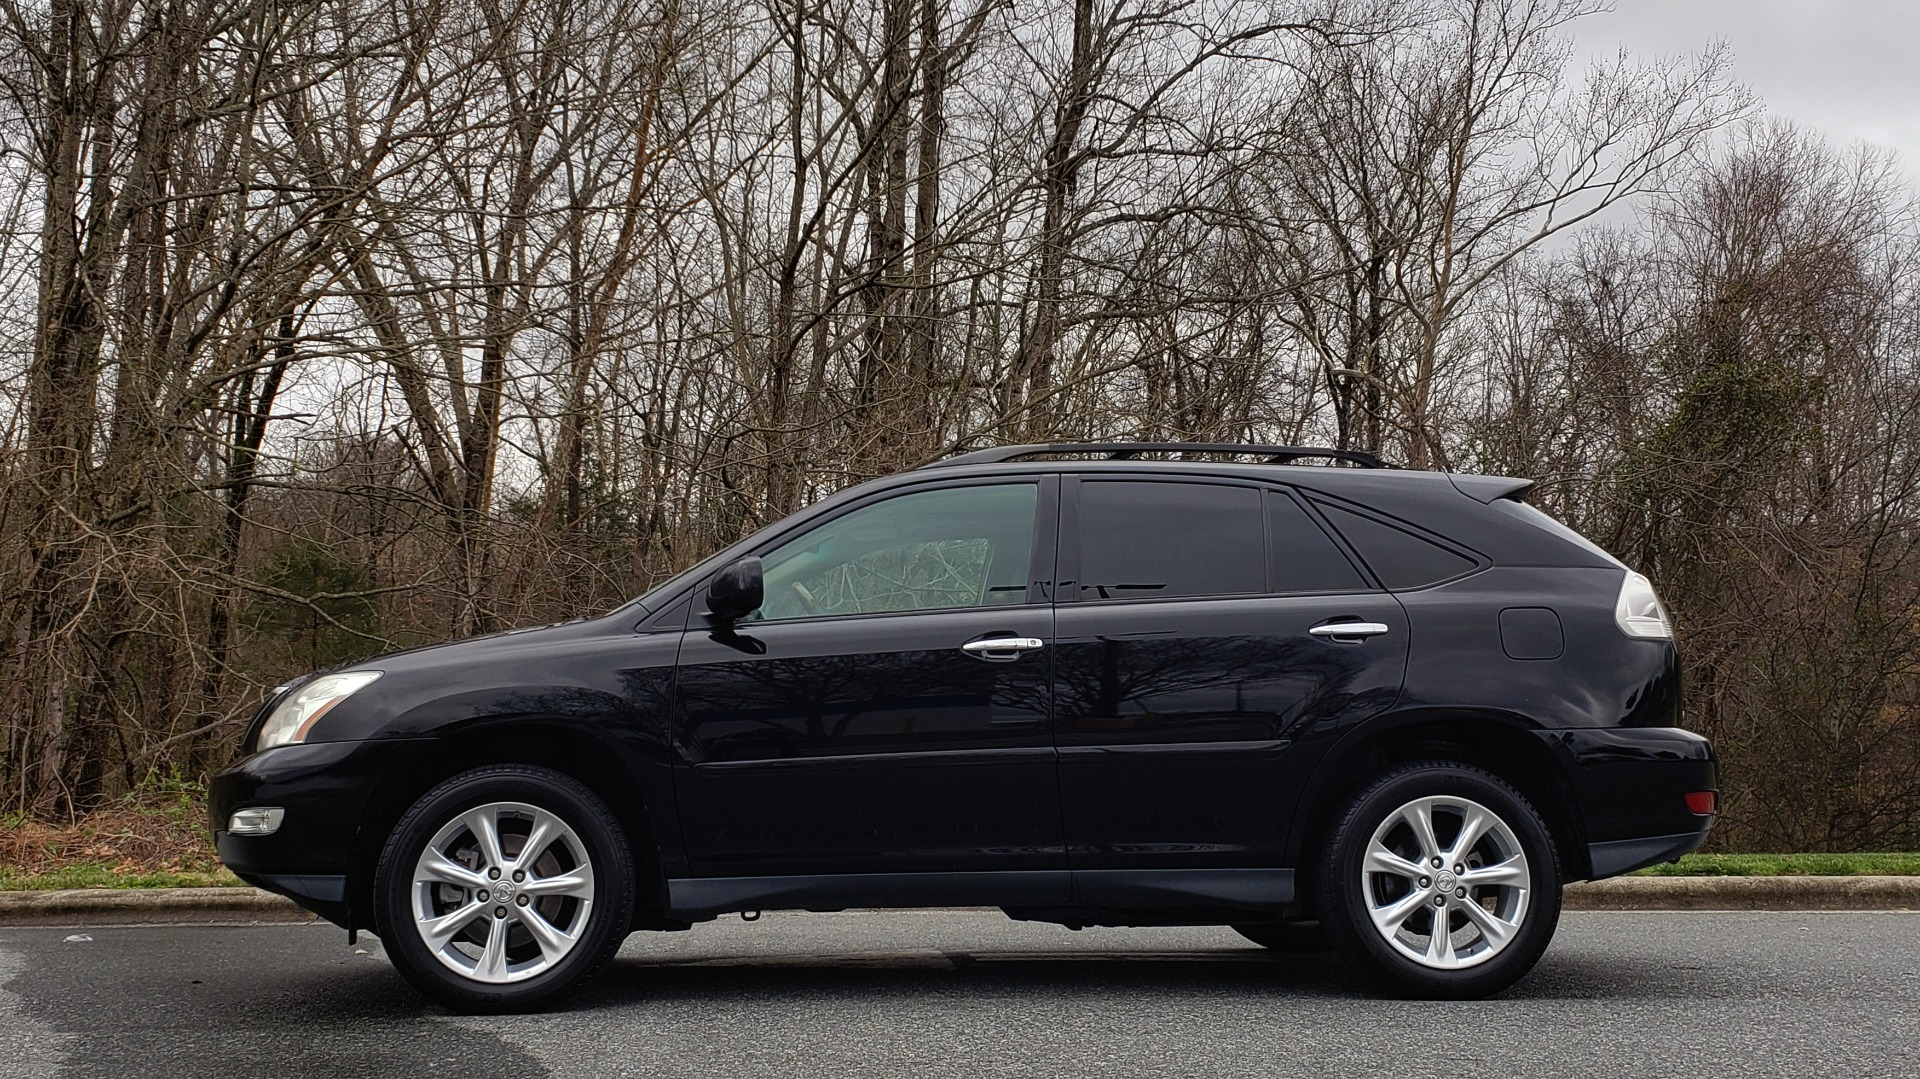 Used 2008 Lexus RX 350 LUXURY EDITION / NAV / SUNROOF / REARVIEW for sale Sold at Formula Imports in Charlotte NC 28227 2